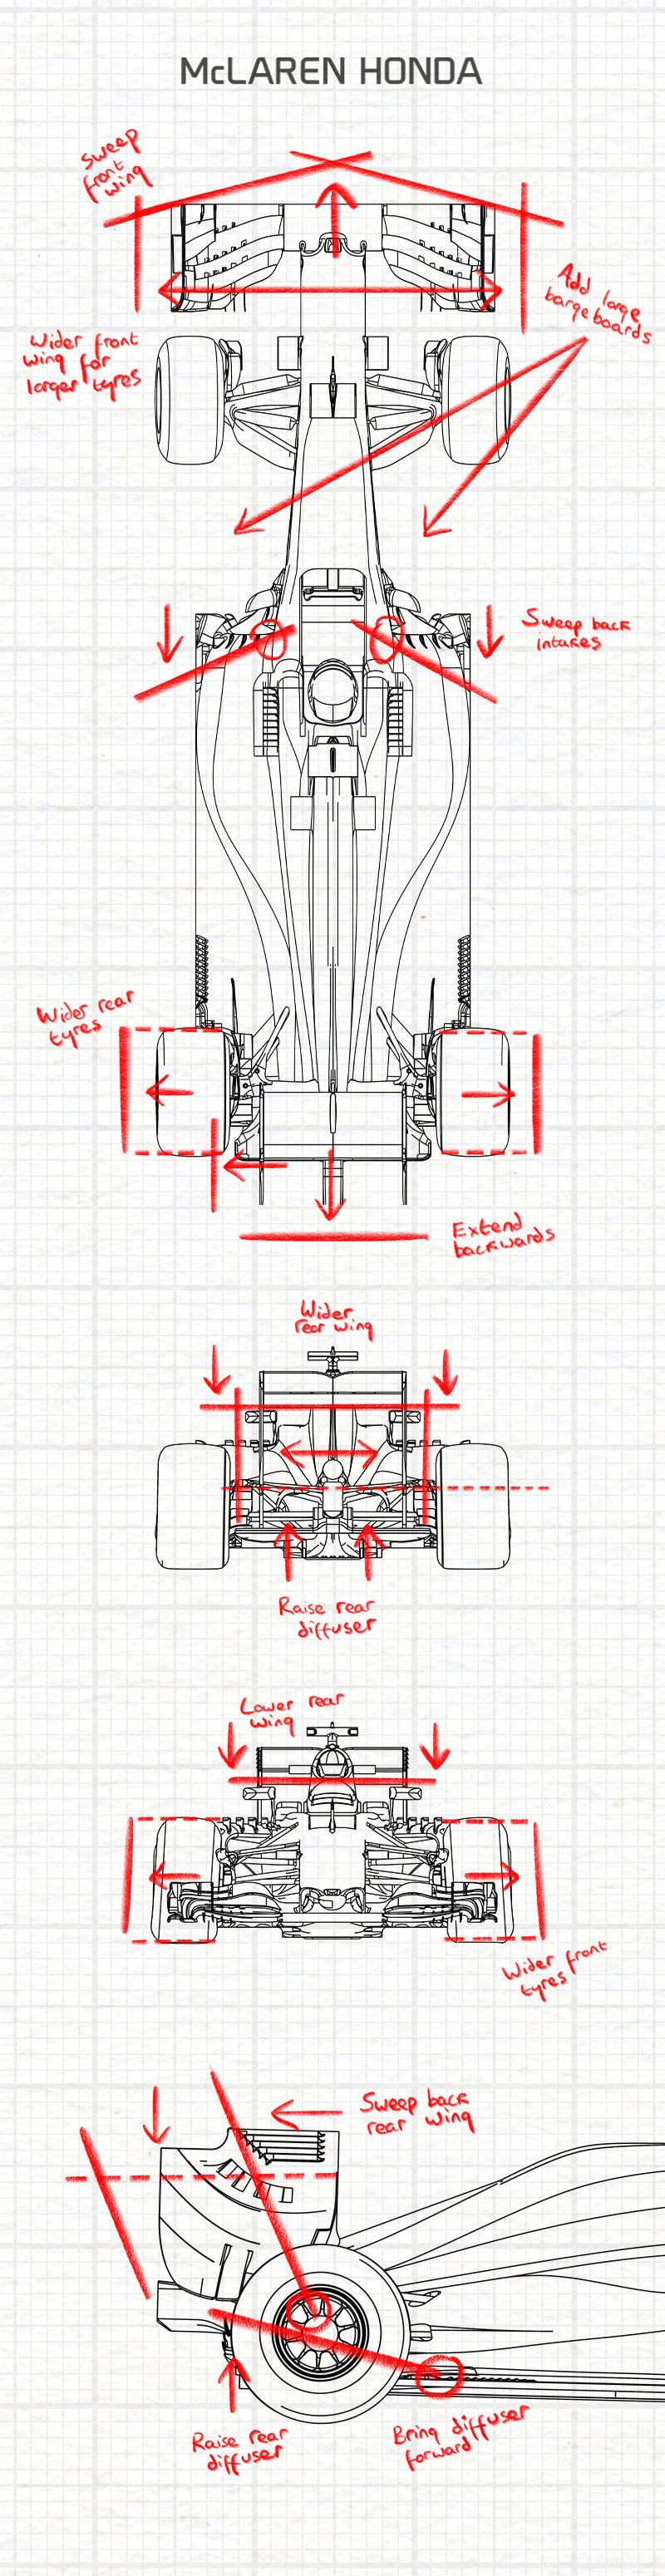 The Mclaren 650s F1 Cars And Racing Engine Diagram Formula 1 2017 Regulations Your Technical Lowdown